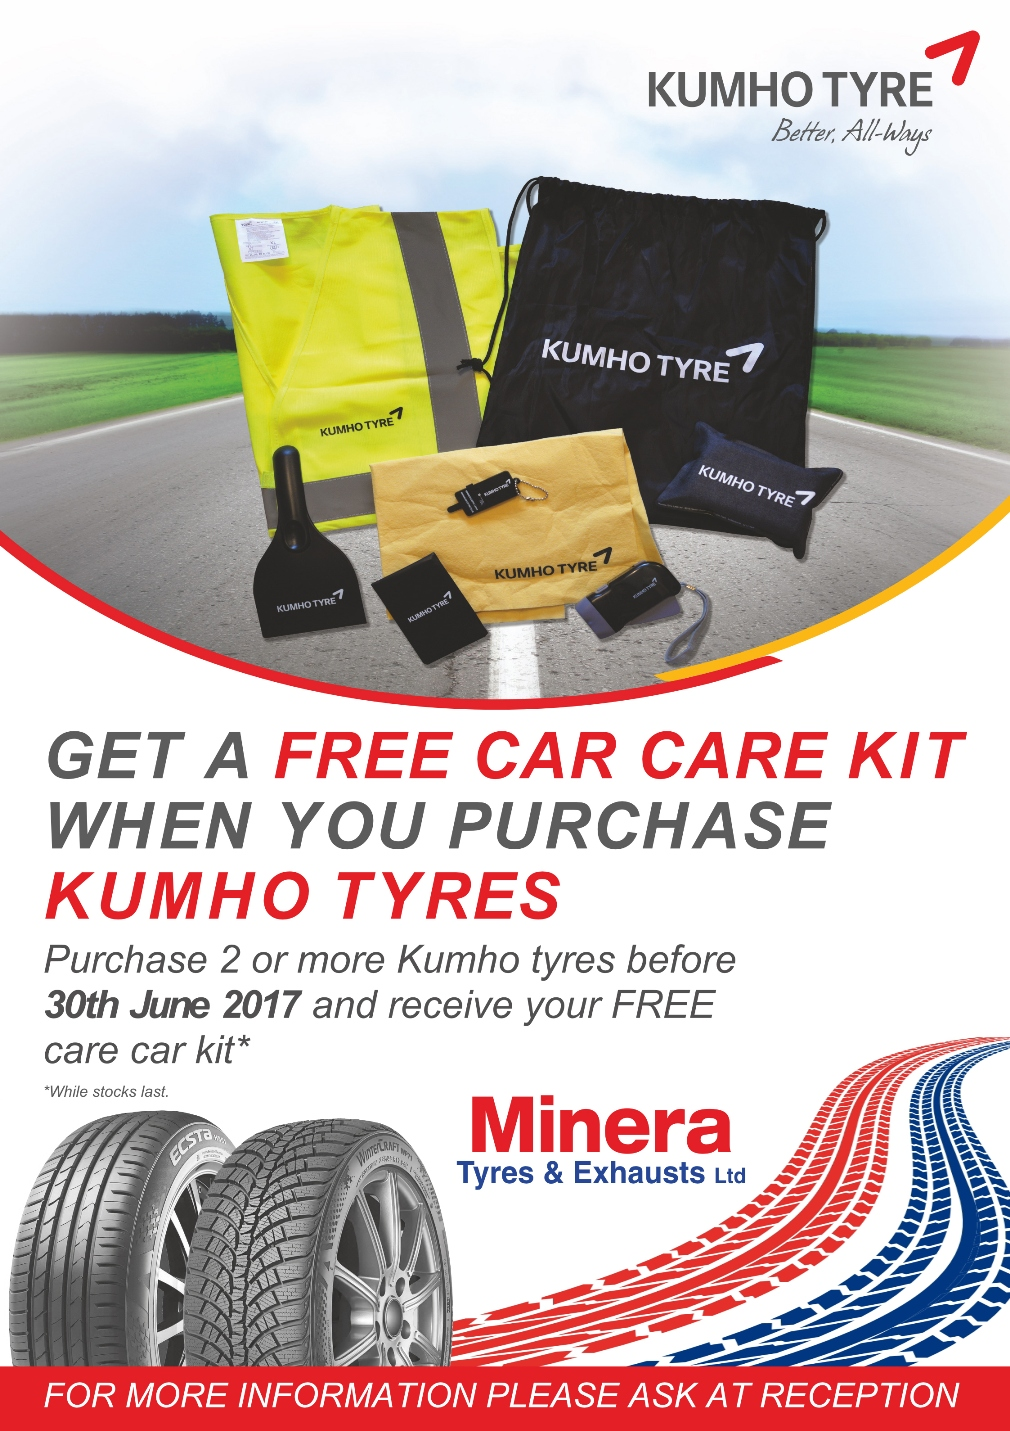 Kumho Car Care Kit offer